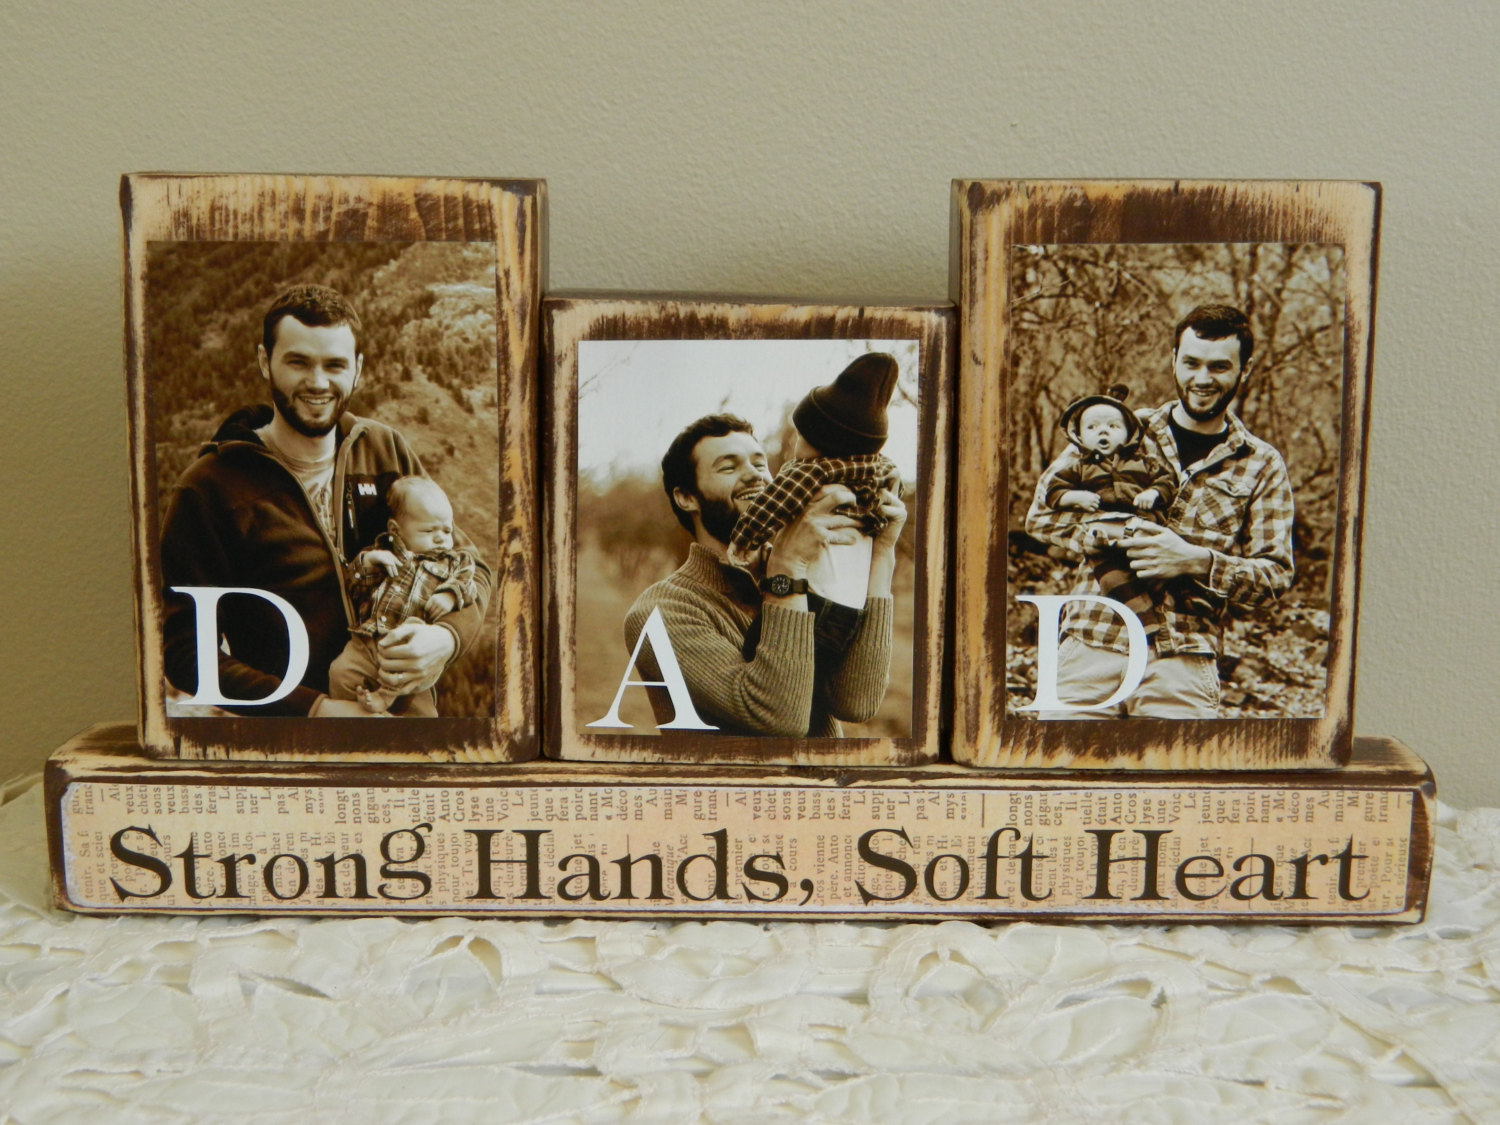 father's day gift ideas | EliteHandicrafts.com